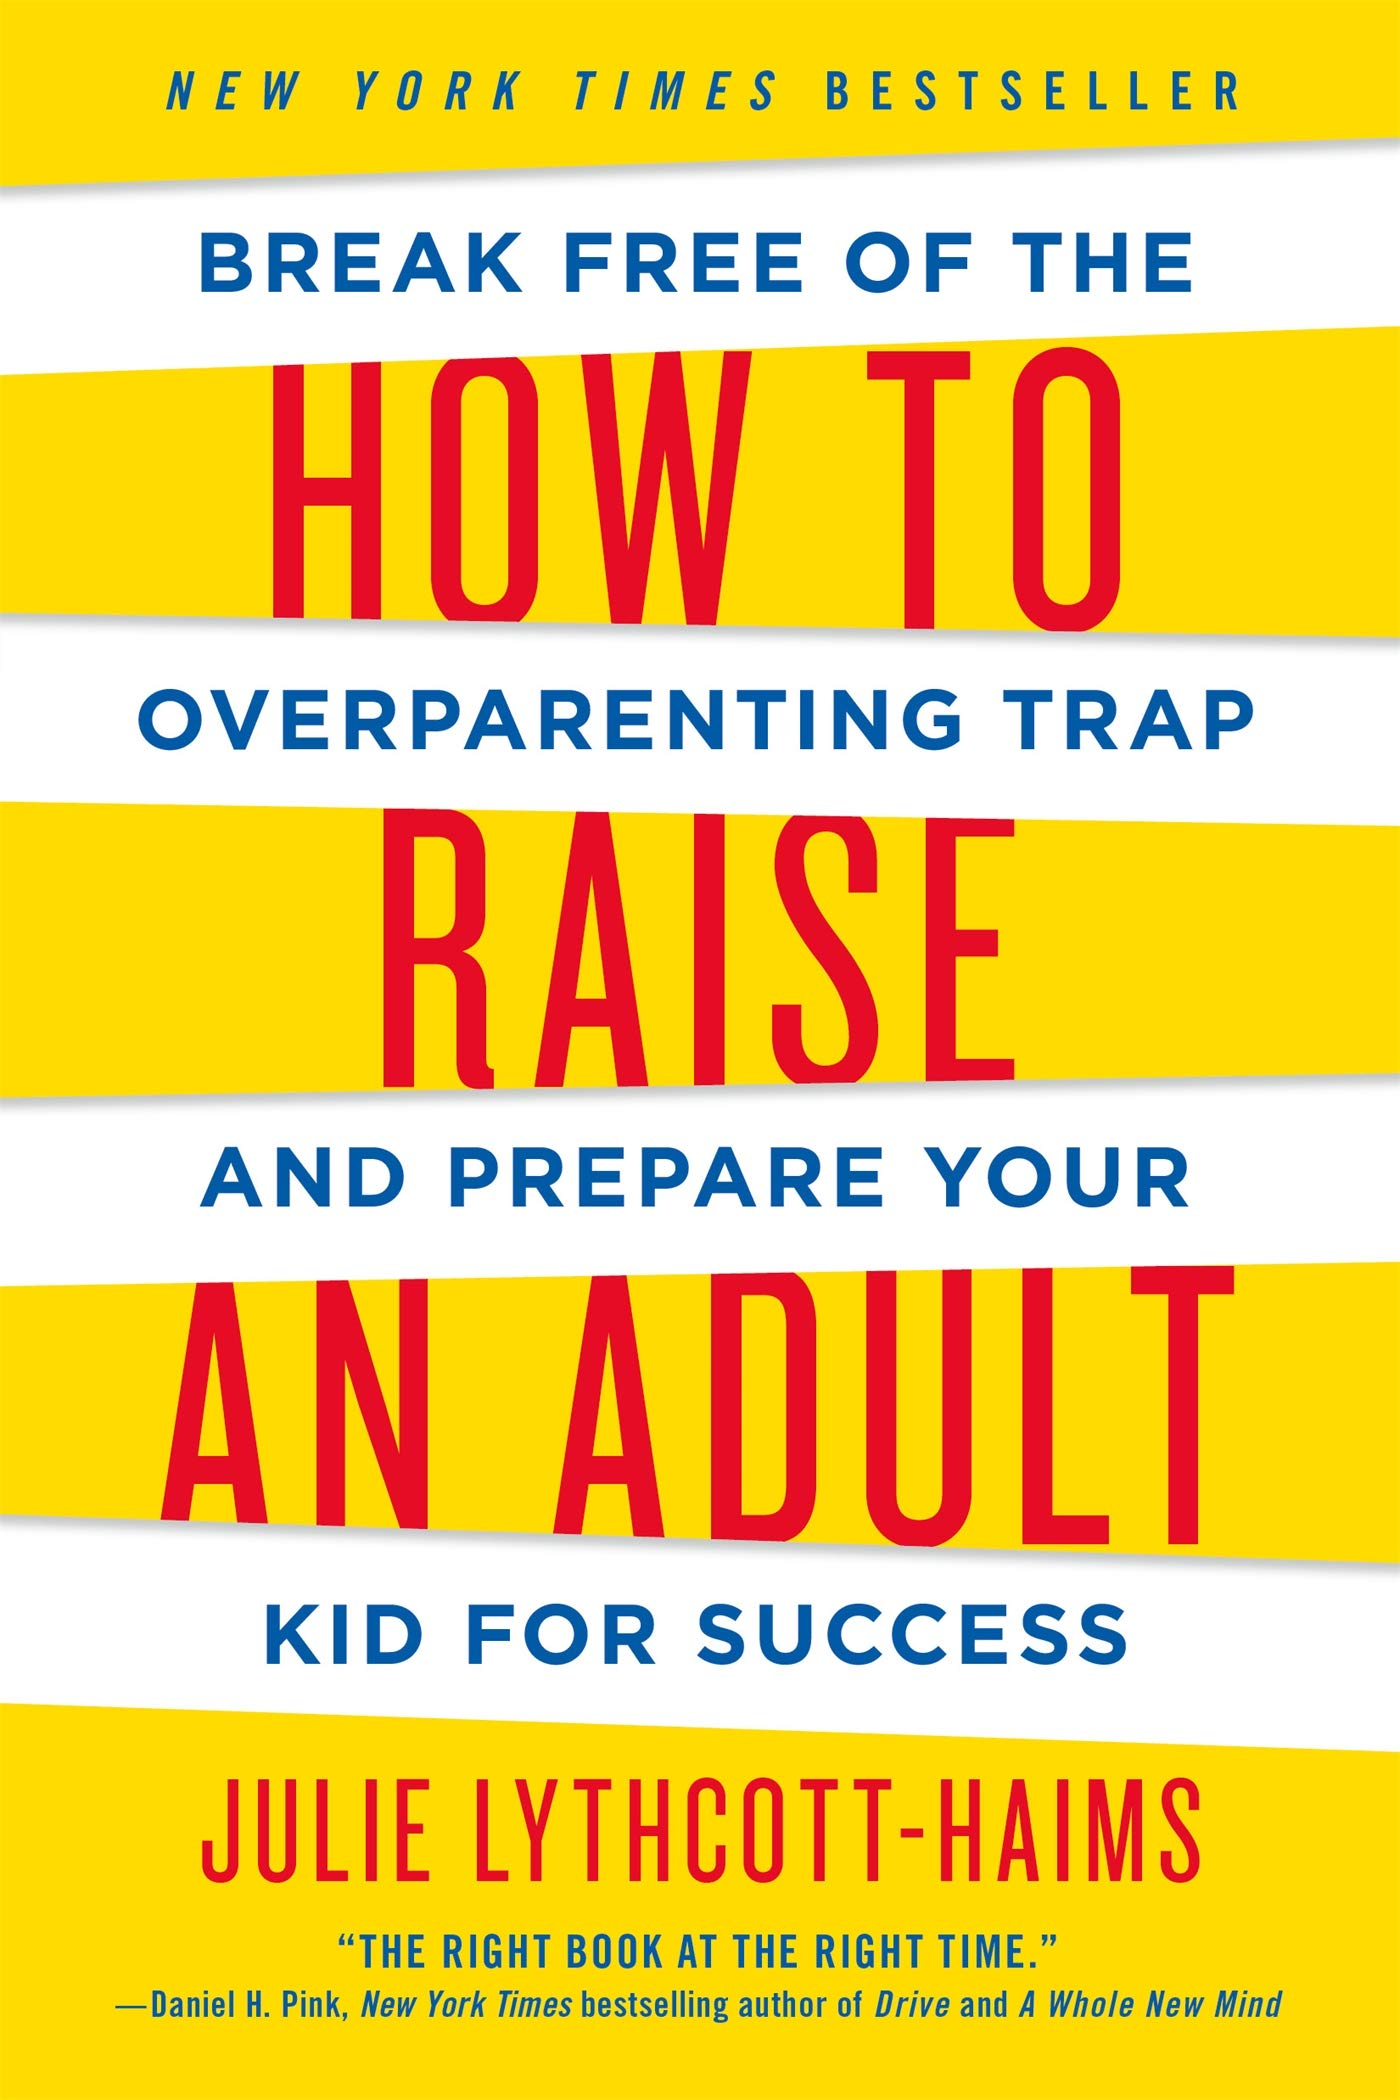 How to Raise an Adult by Julie Lythcott-Haims - An FW Book Review